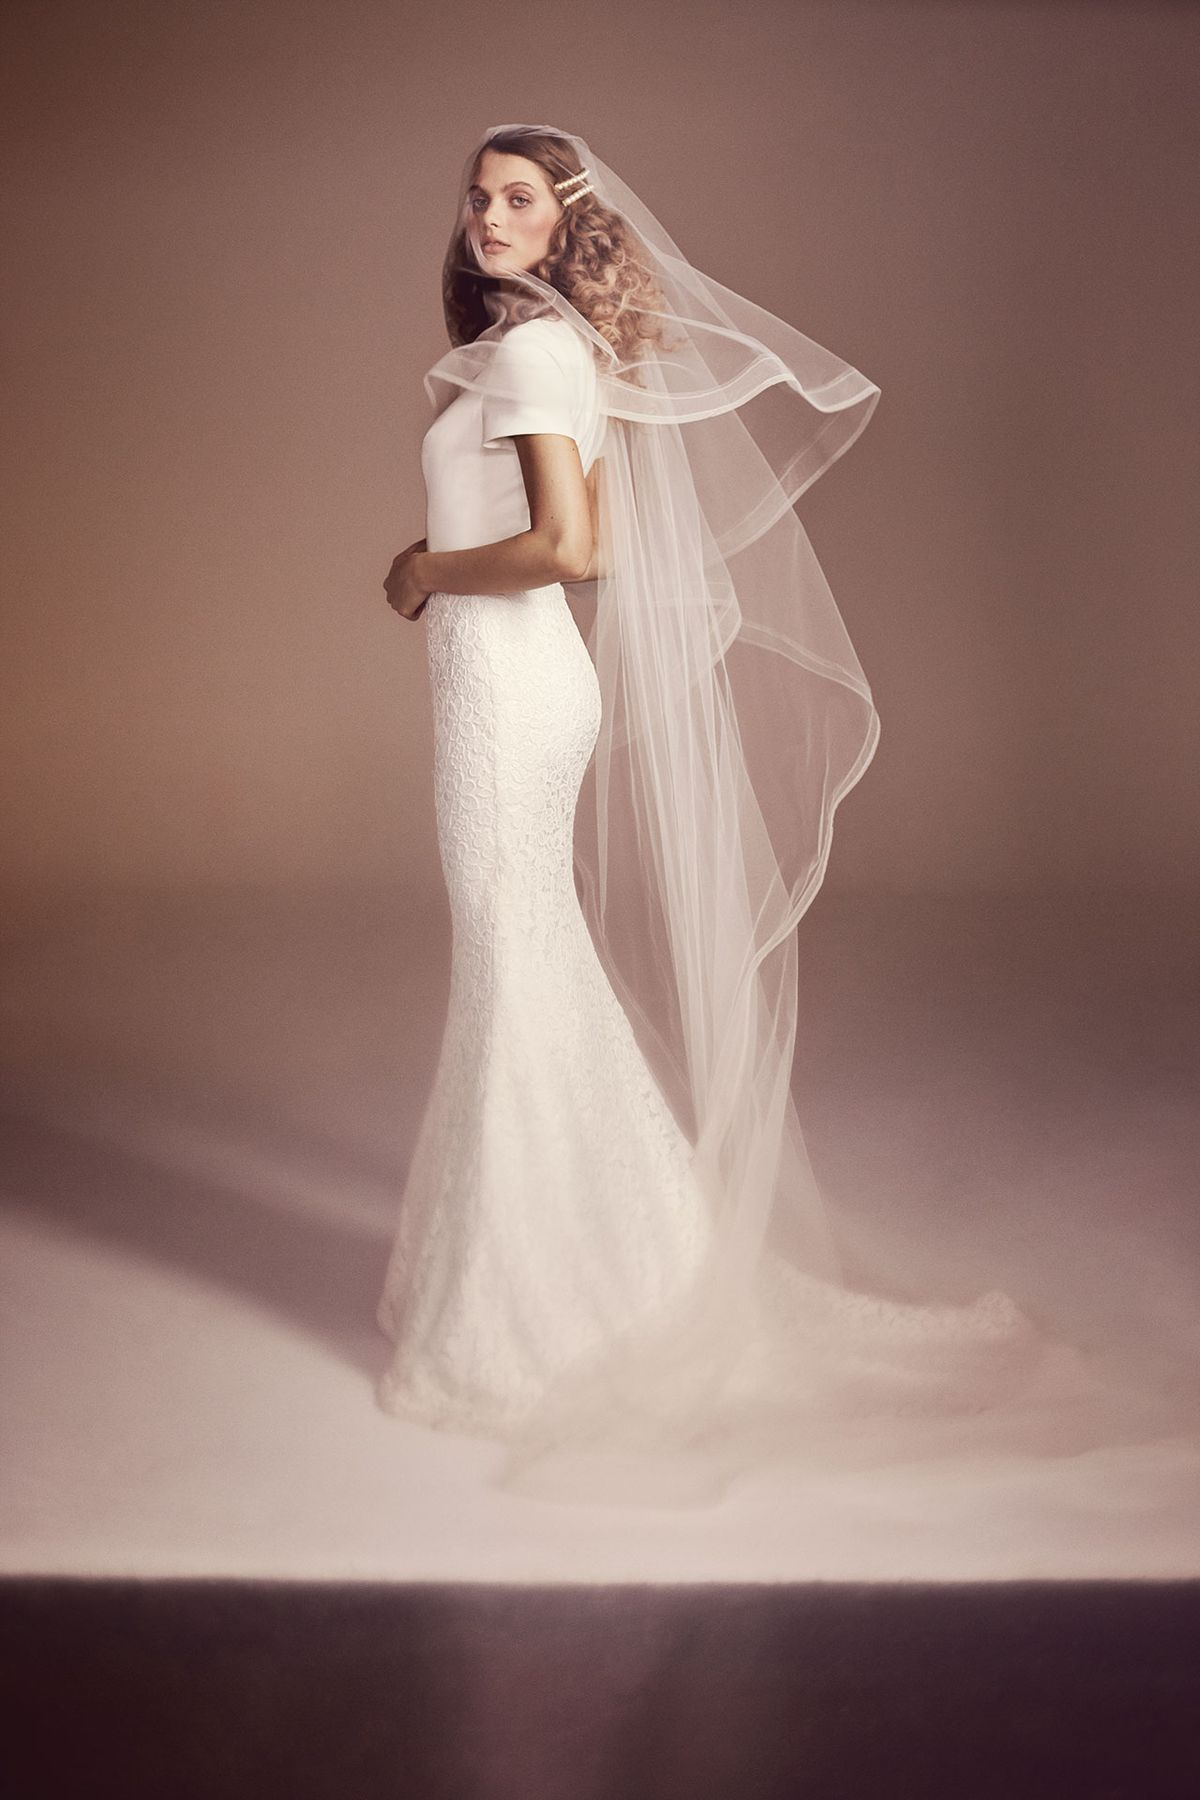 """White wedding dress and two tier veil<p><a href=""""http://www.homeinteriordesign.org/2018/02/short-guide-to-interior-decoration.html"""">Short guide to interior decoration</a></p>"""